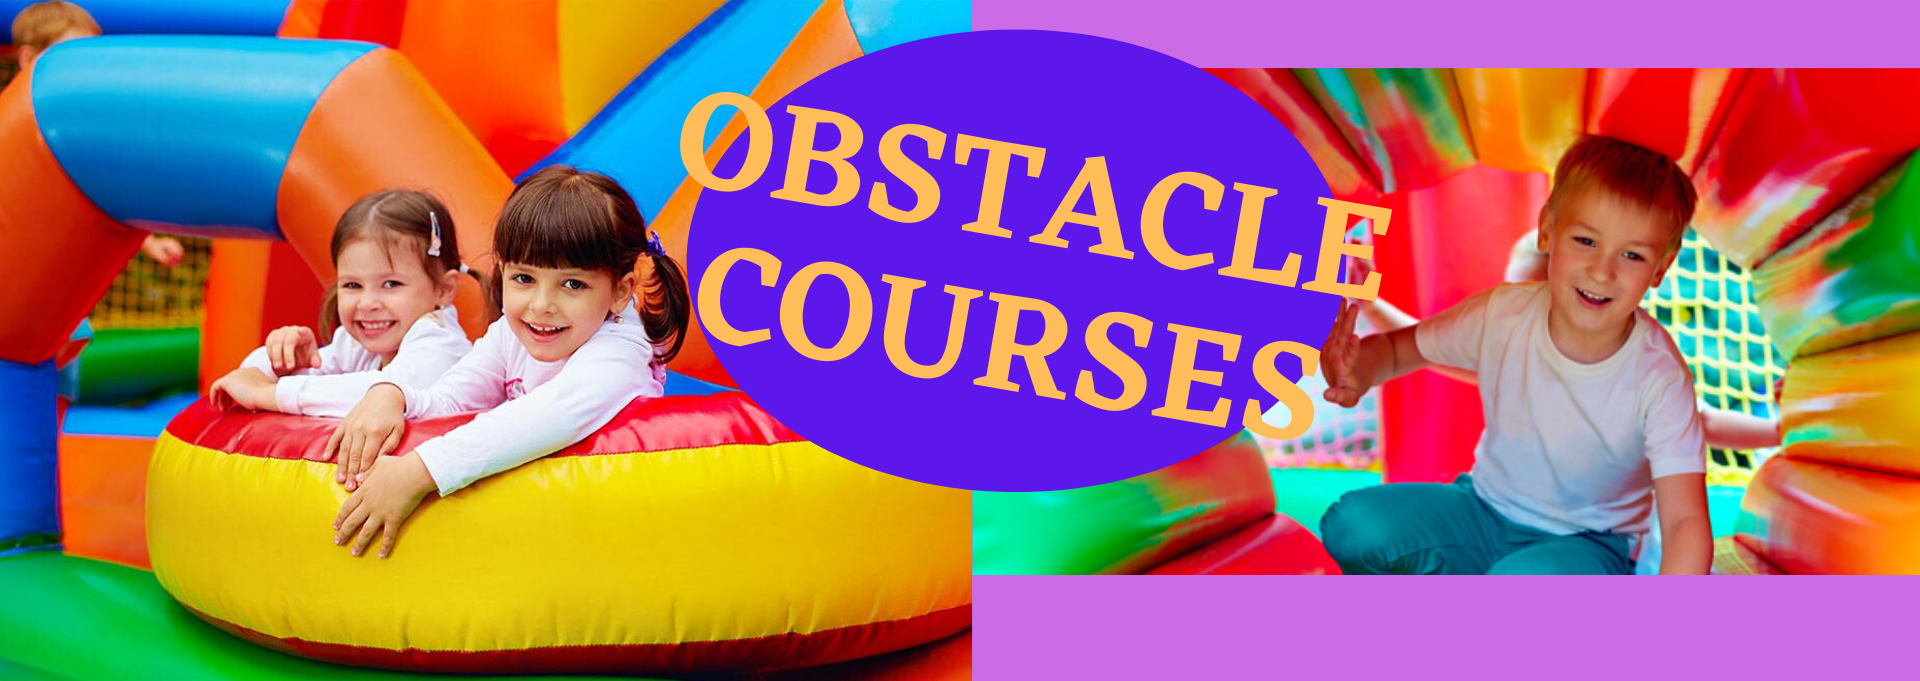 check out our selection of obstacle courses in Chicago